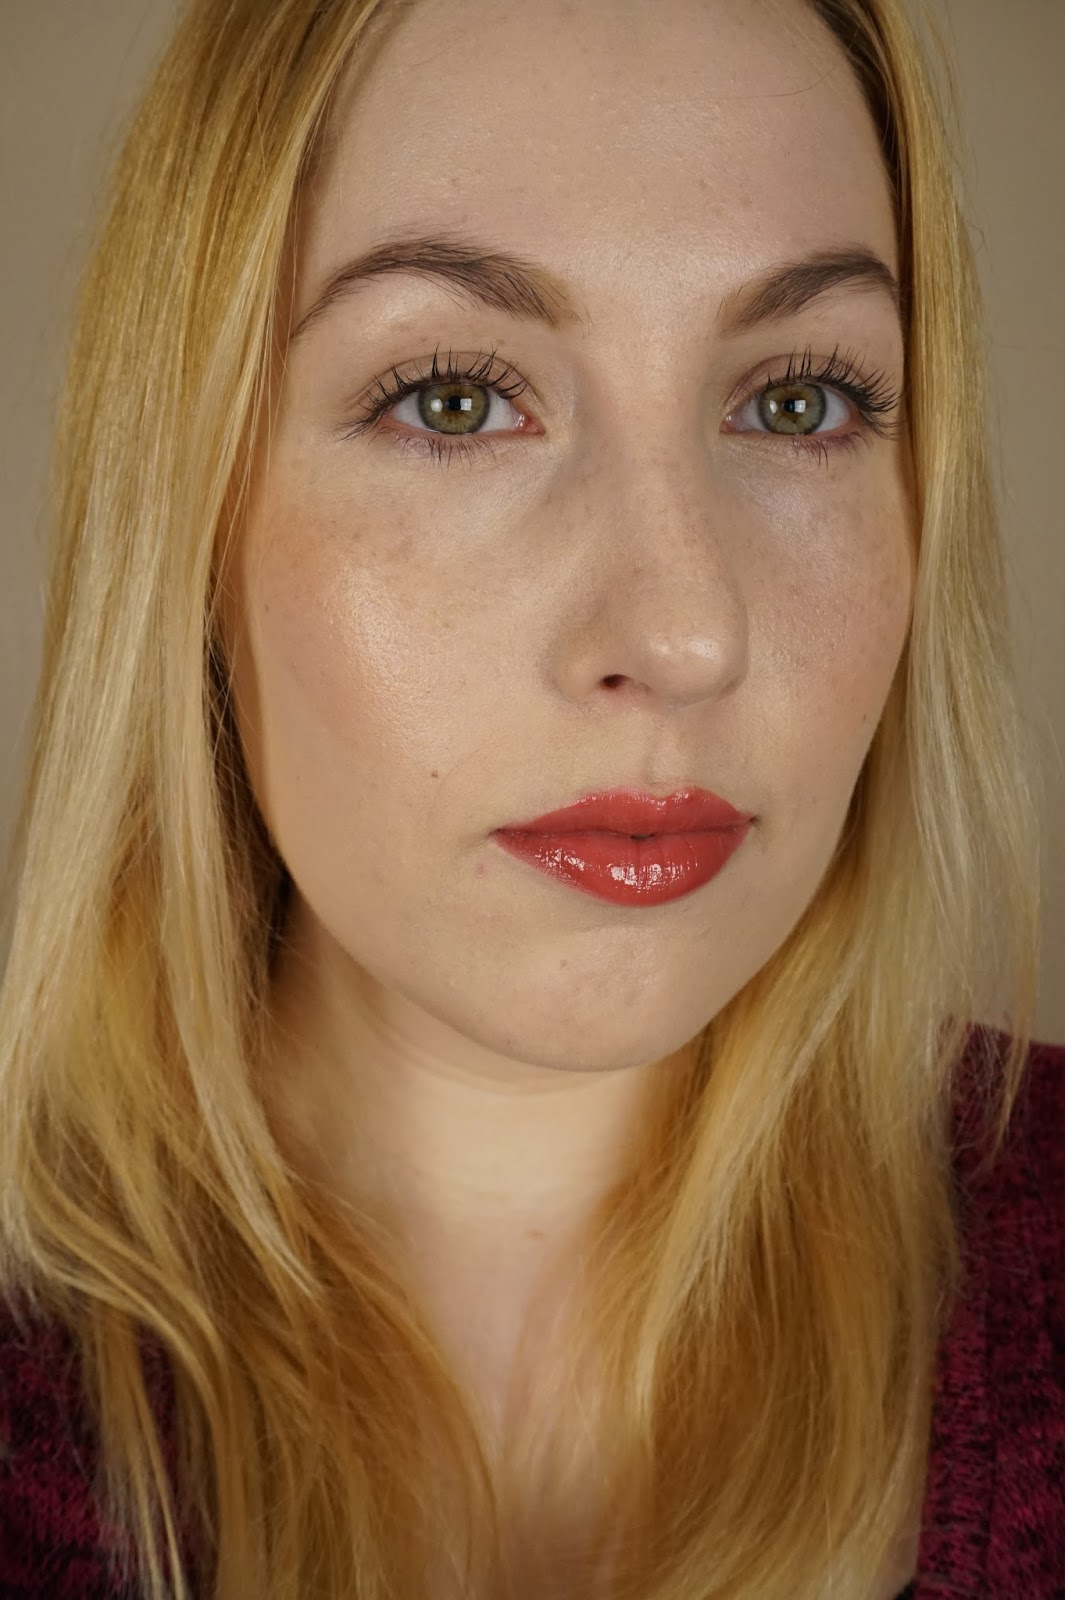 Too Faced Brow Envy Kit, Covergirl LashBlast Waterproof Volume Mascara, Too Faced La Creme Lipstick in 'Cinnamon Kiss', and It Cosmetics CC + Lip Serum in 'Love'